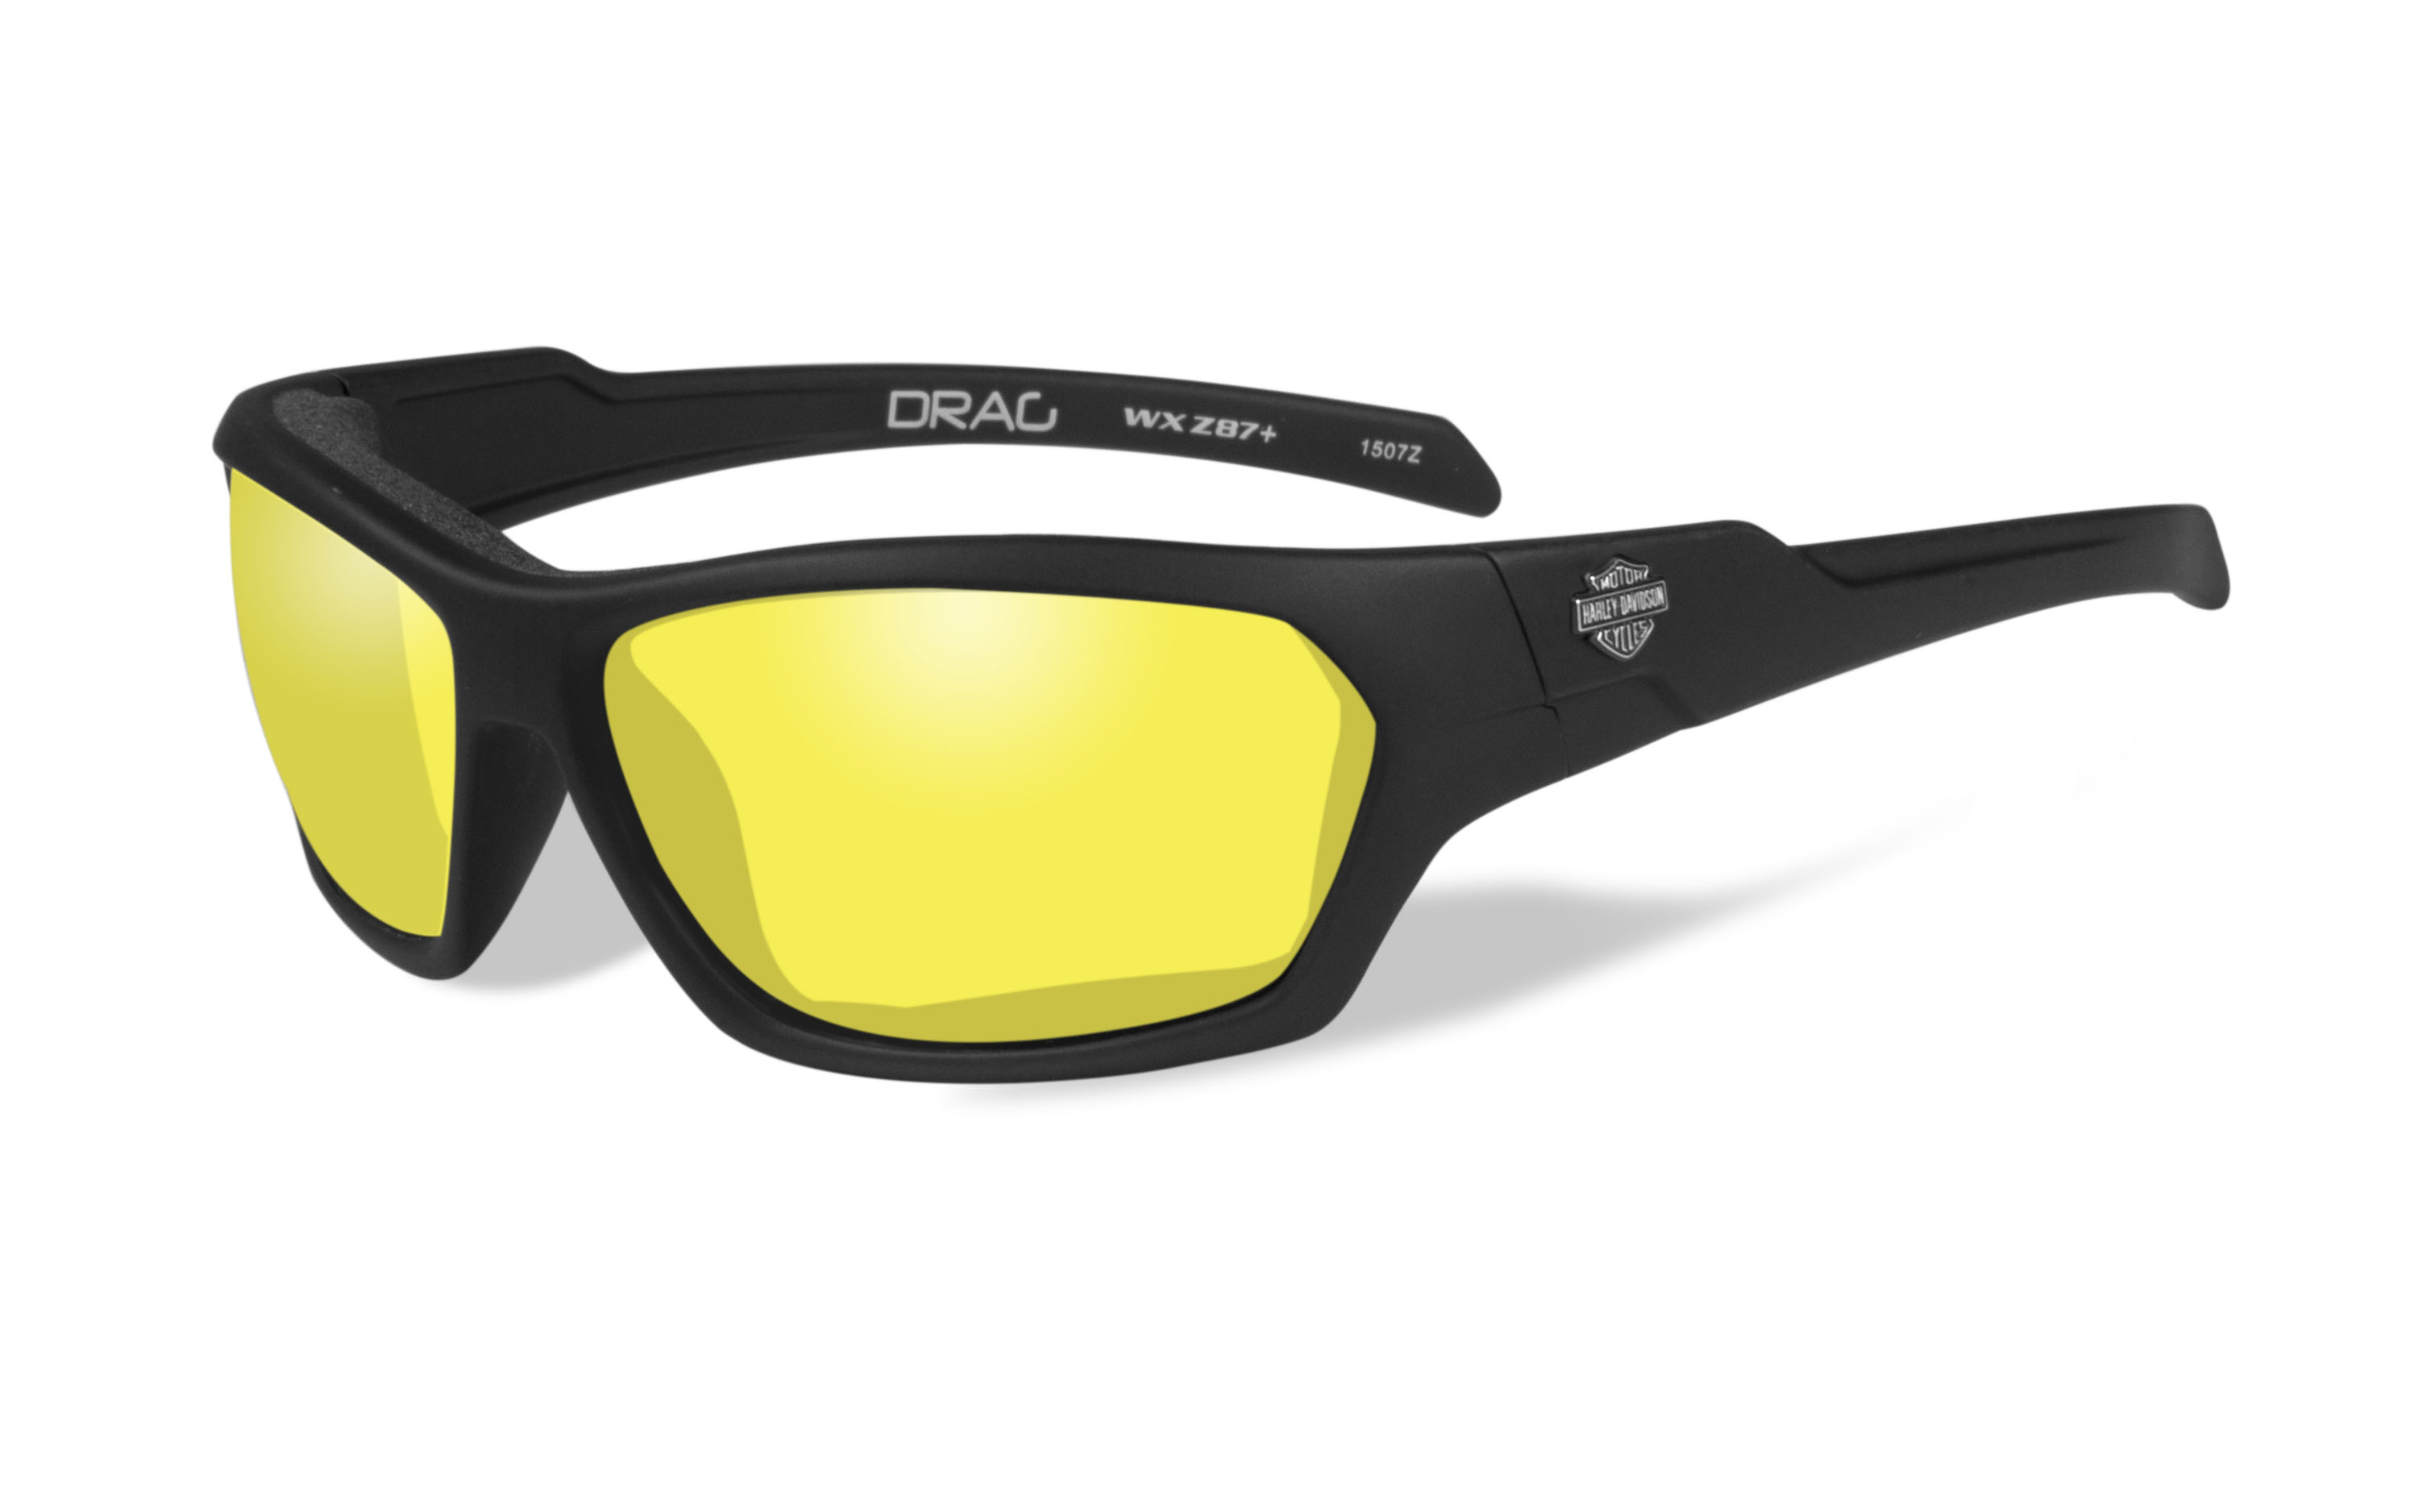 a34ed2bc991a Harley-Davidson® Men's Wiley-X® Drag Sunglasses | Yellow Lenses |  Matte